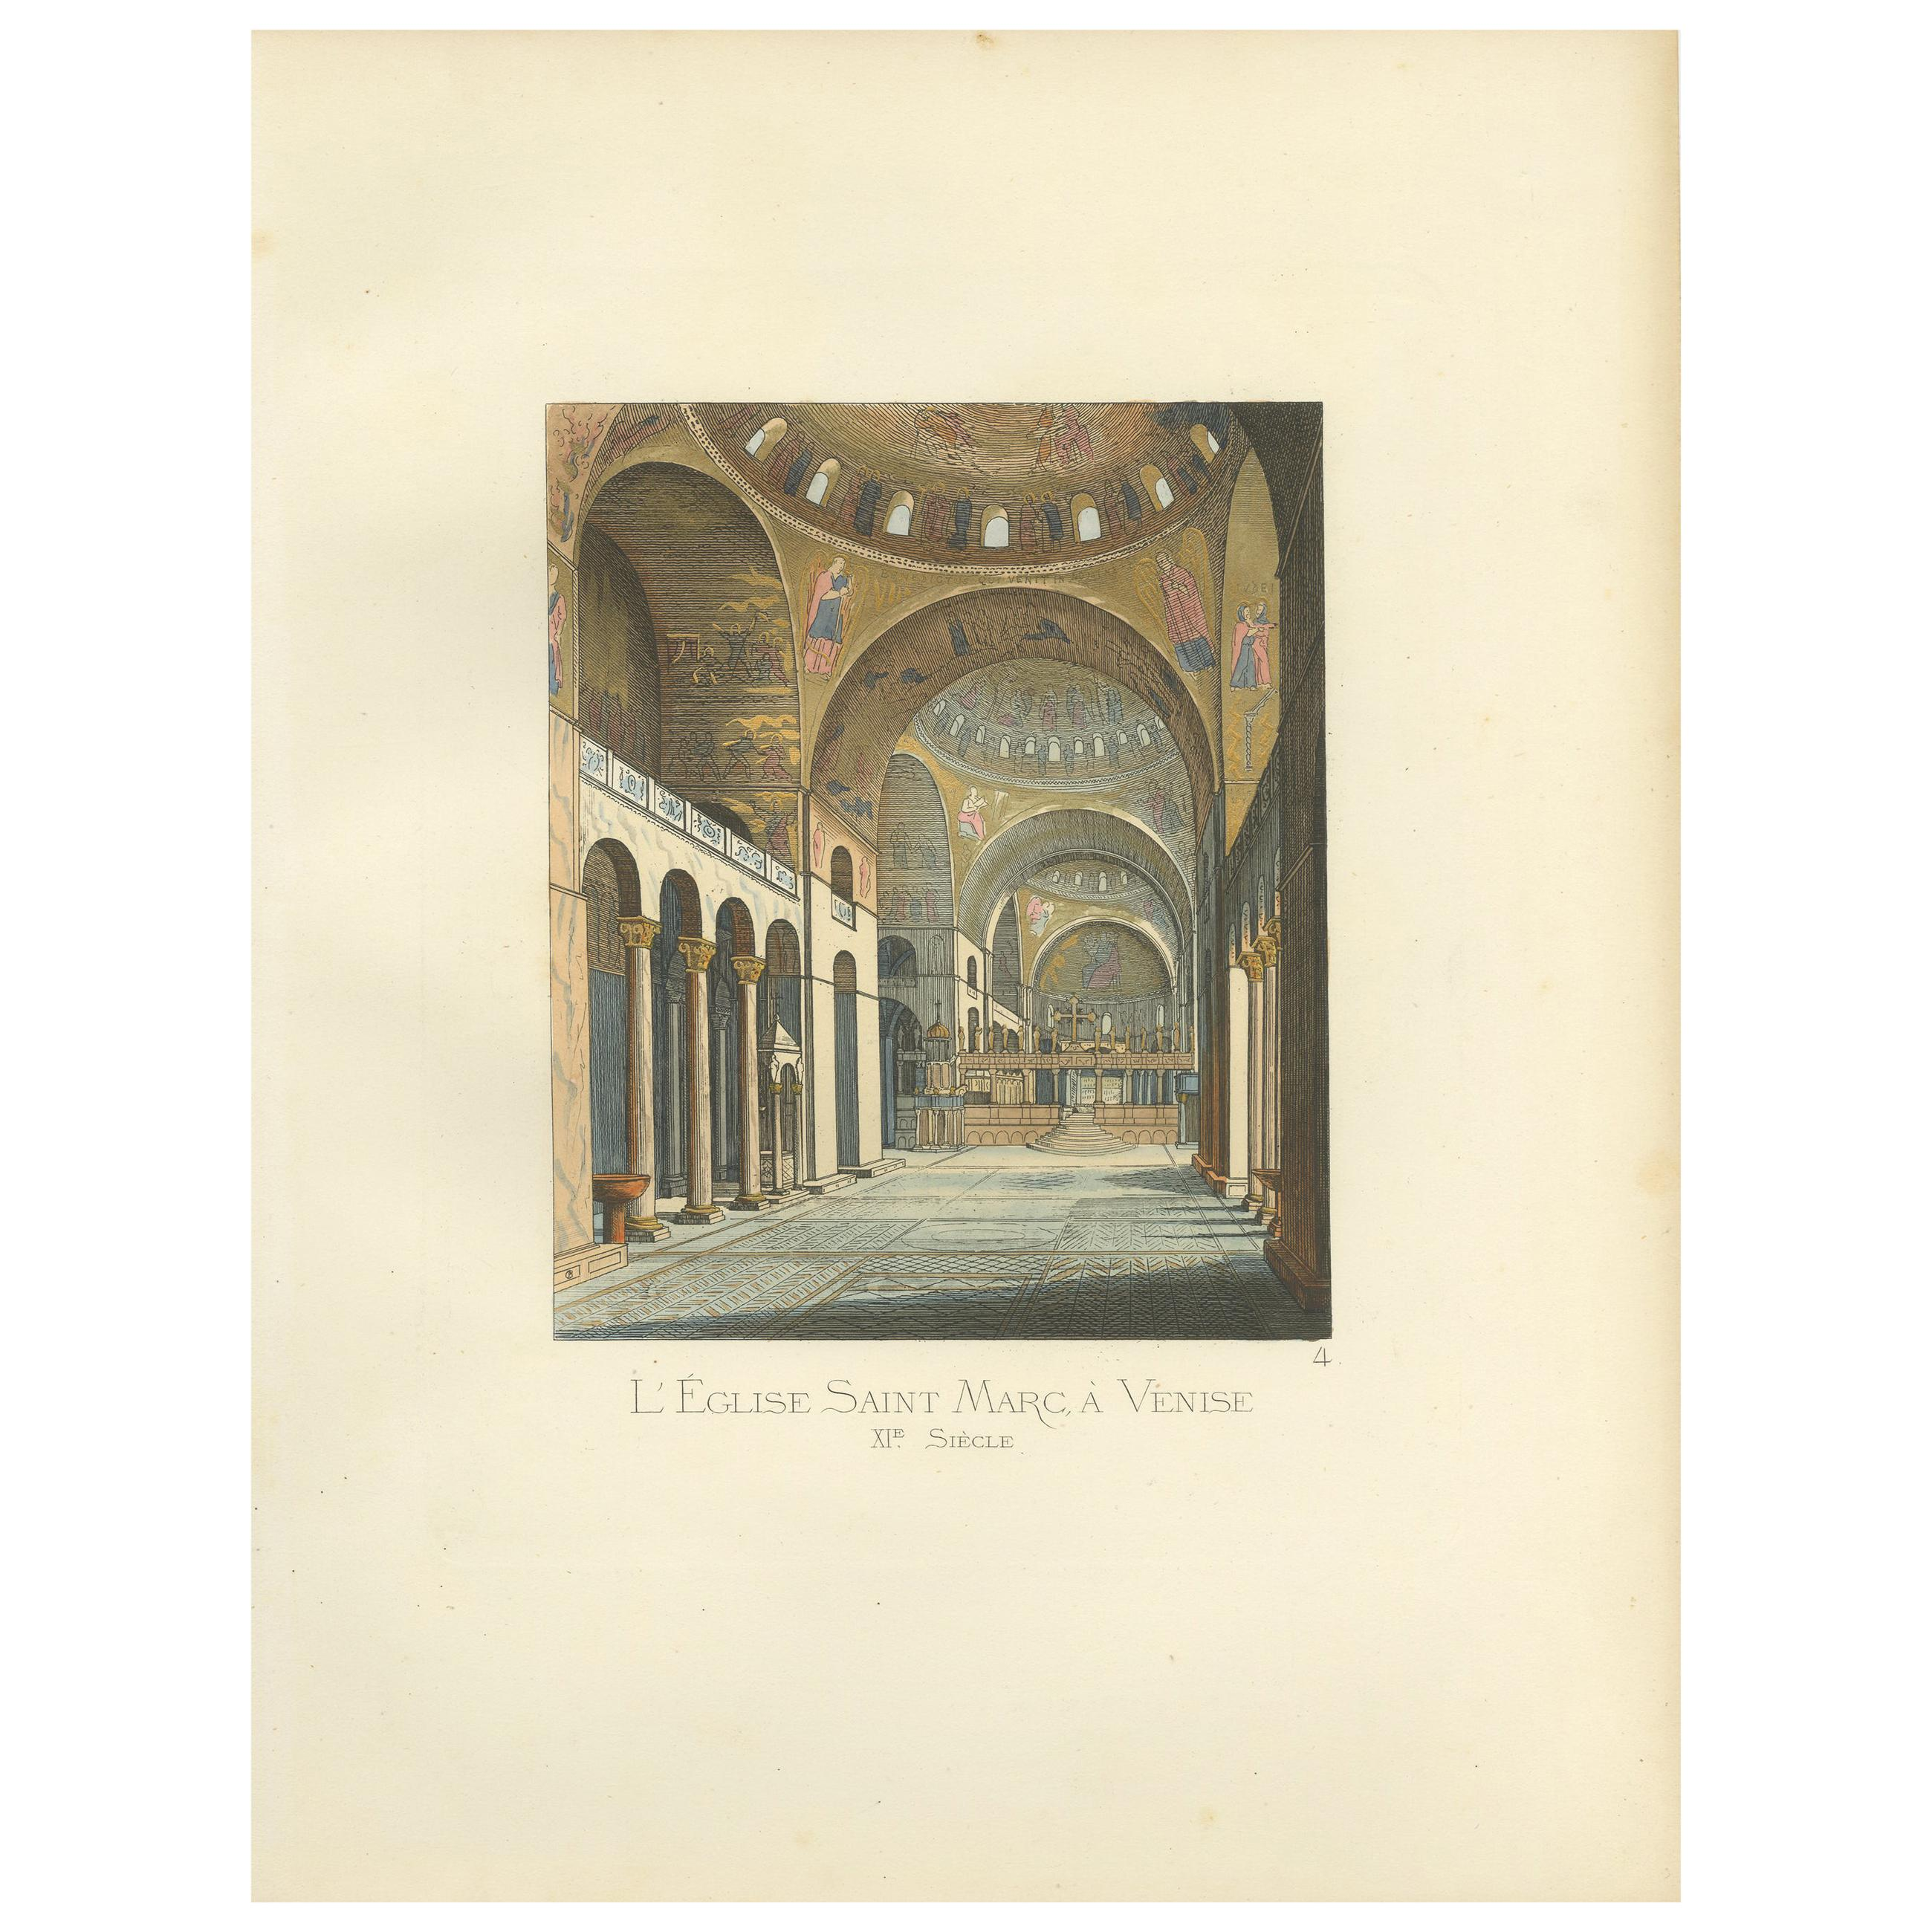 Antique Print of St. Mark's Basilica in Venice by Bonnard '1860'